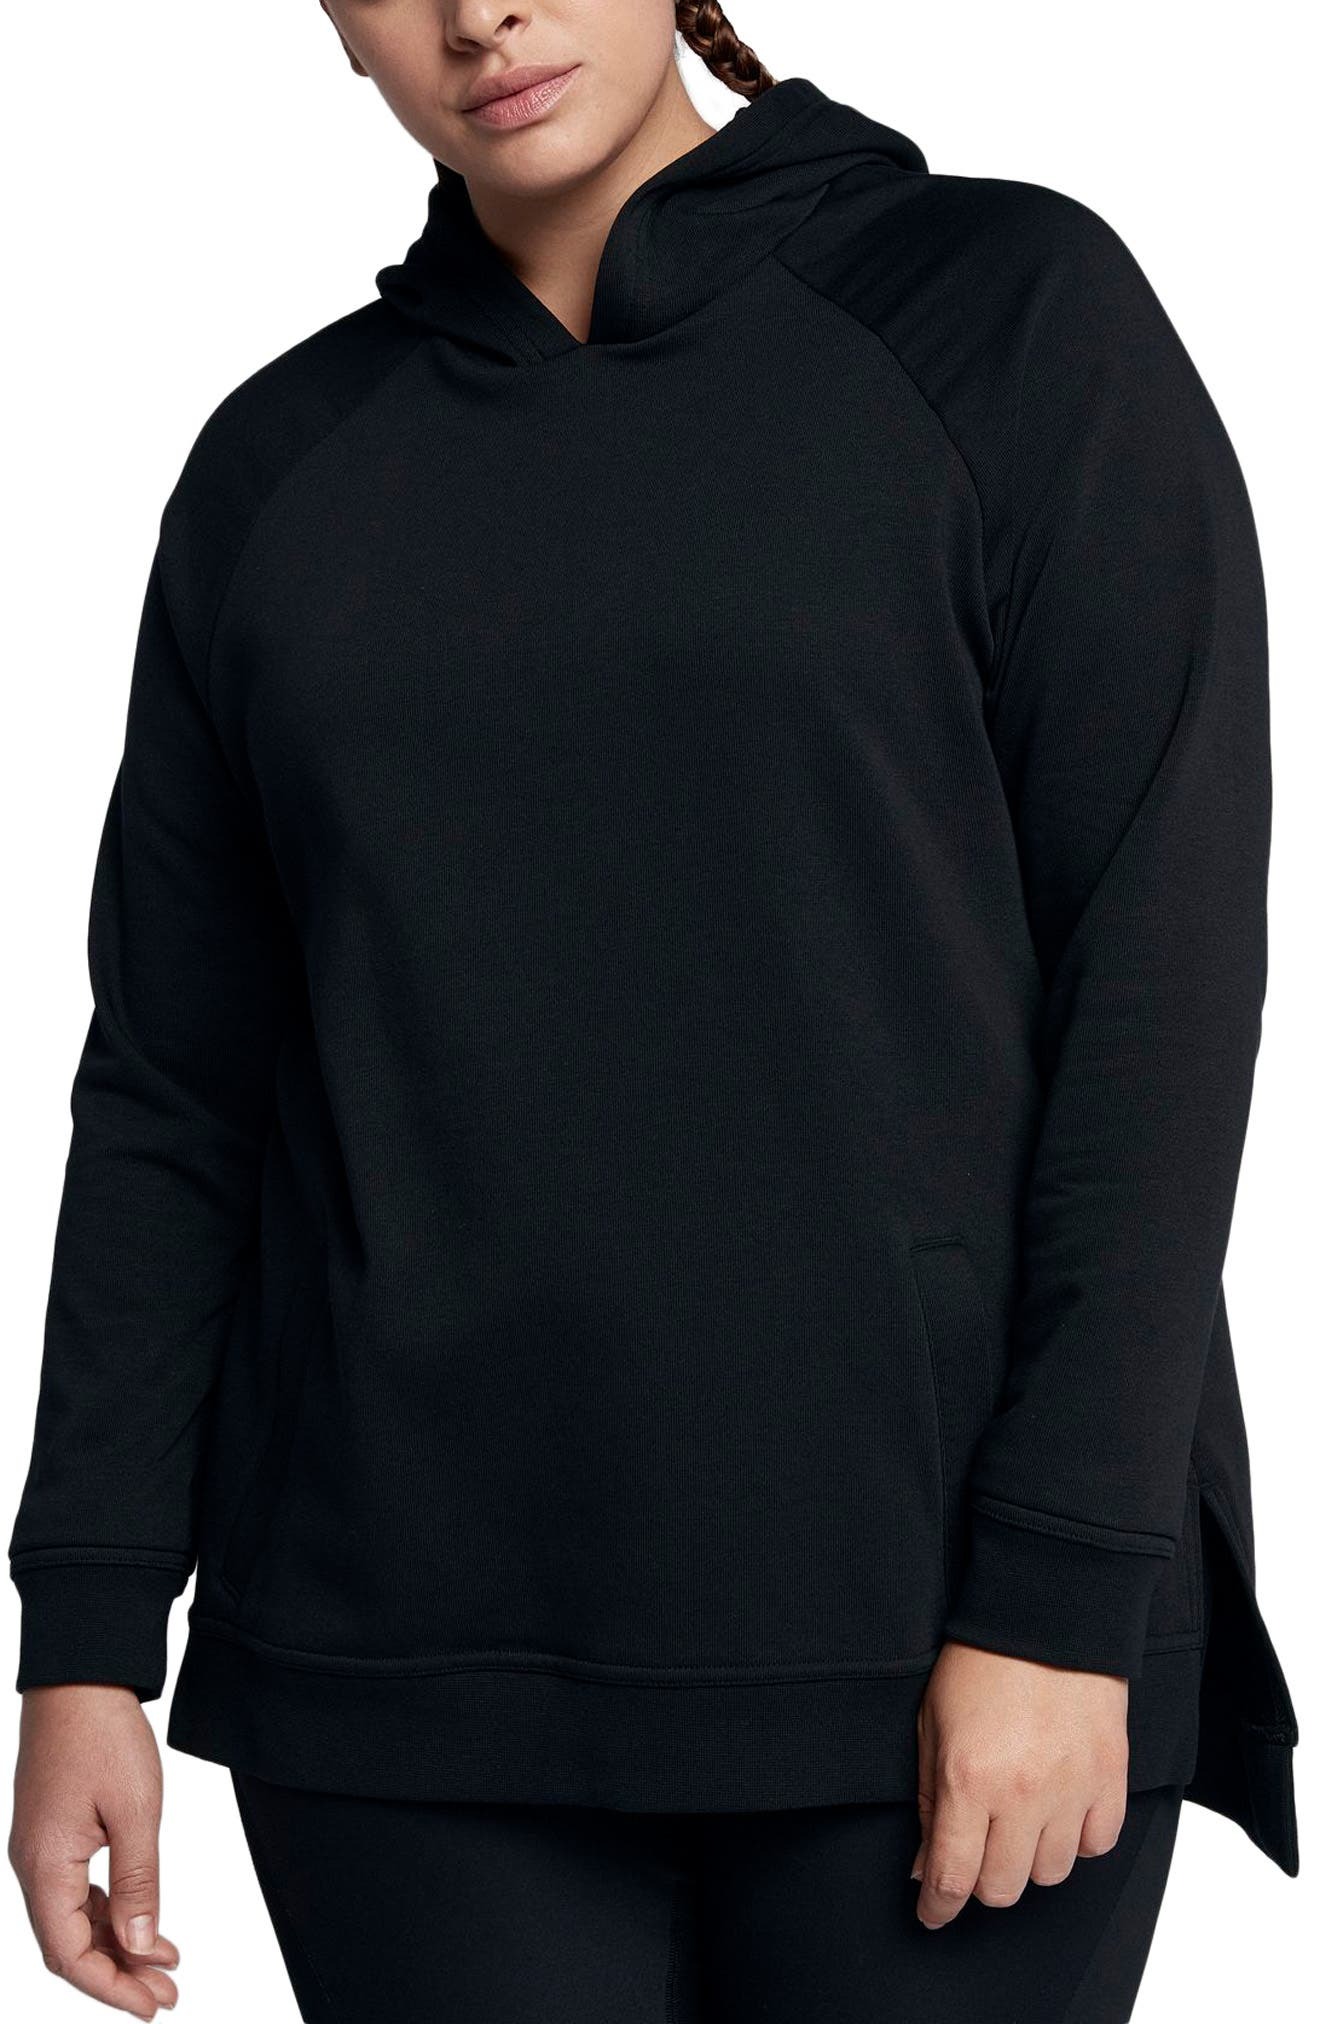 Dry Training Hoodie,                         Main,                         color, 010